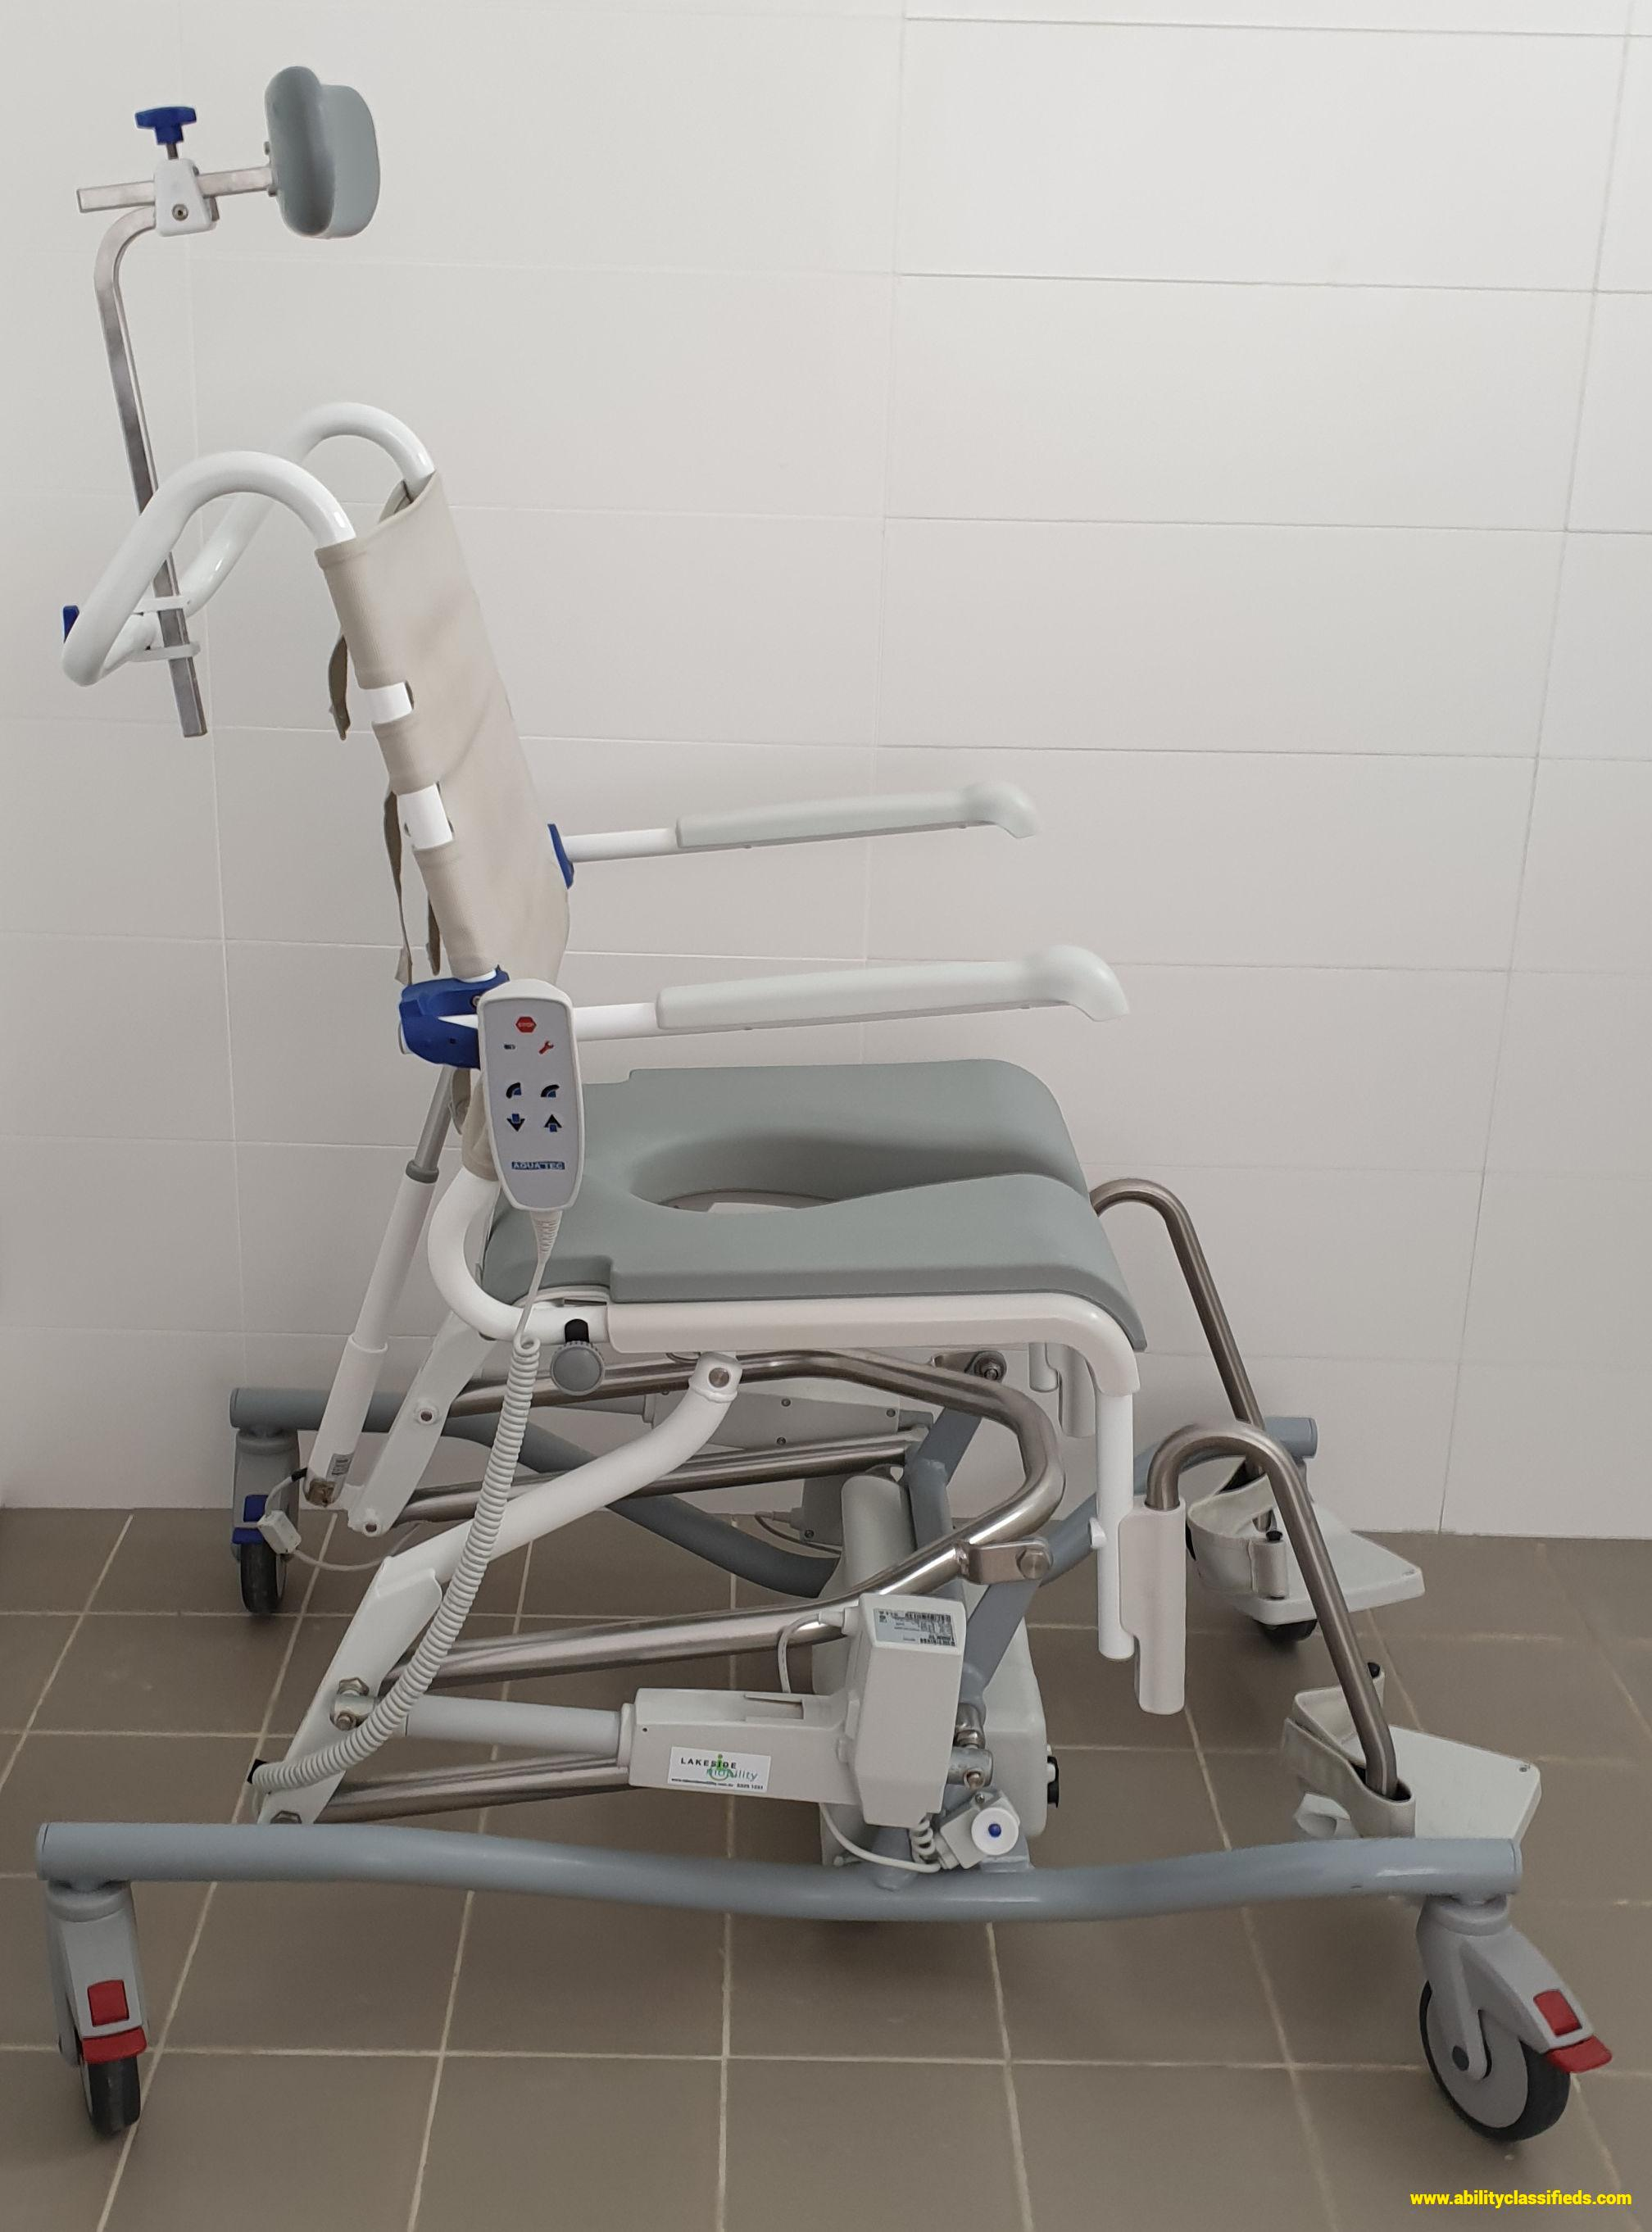 Aquatec Ocean E-VIP - electrically operated shower commode chair